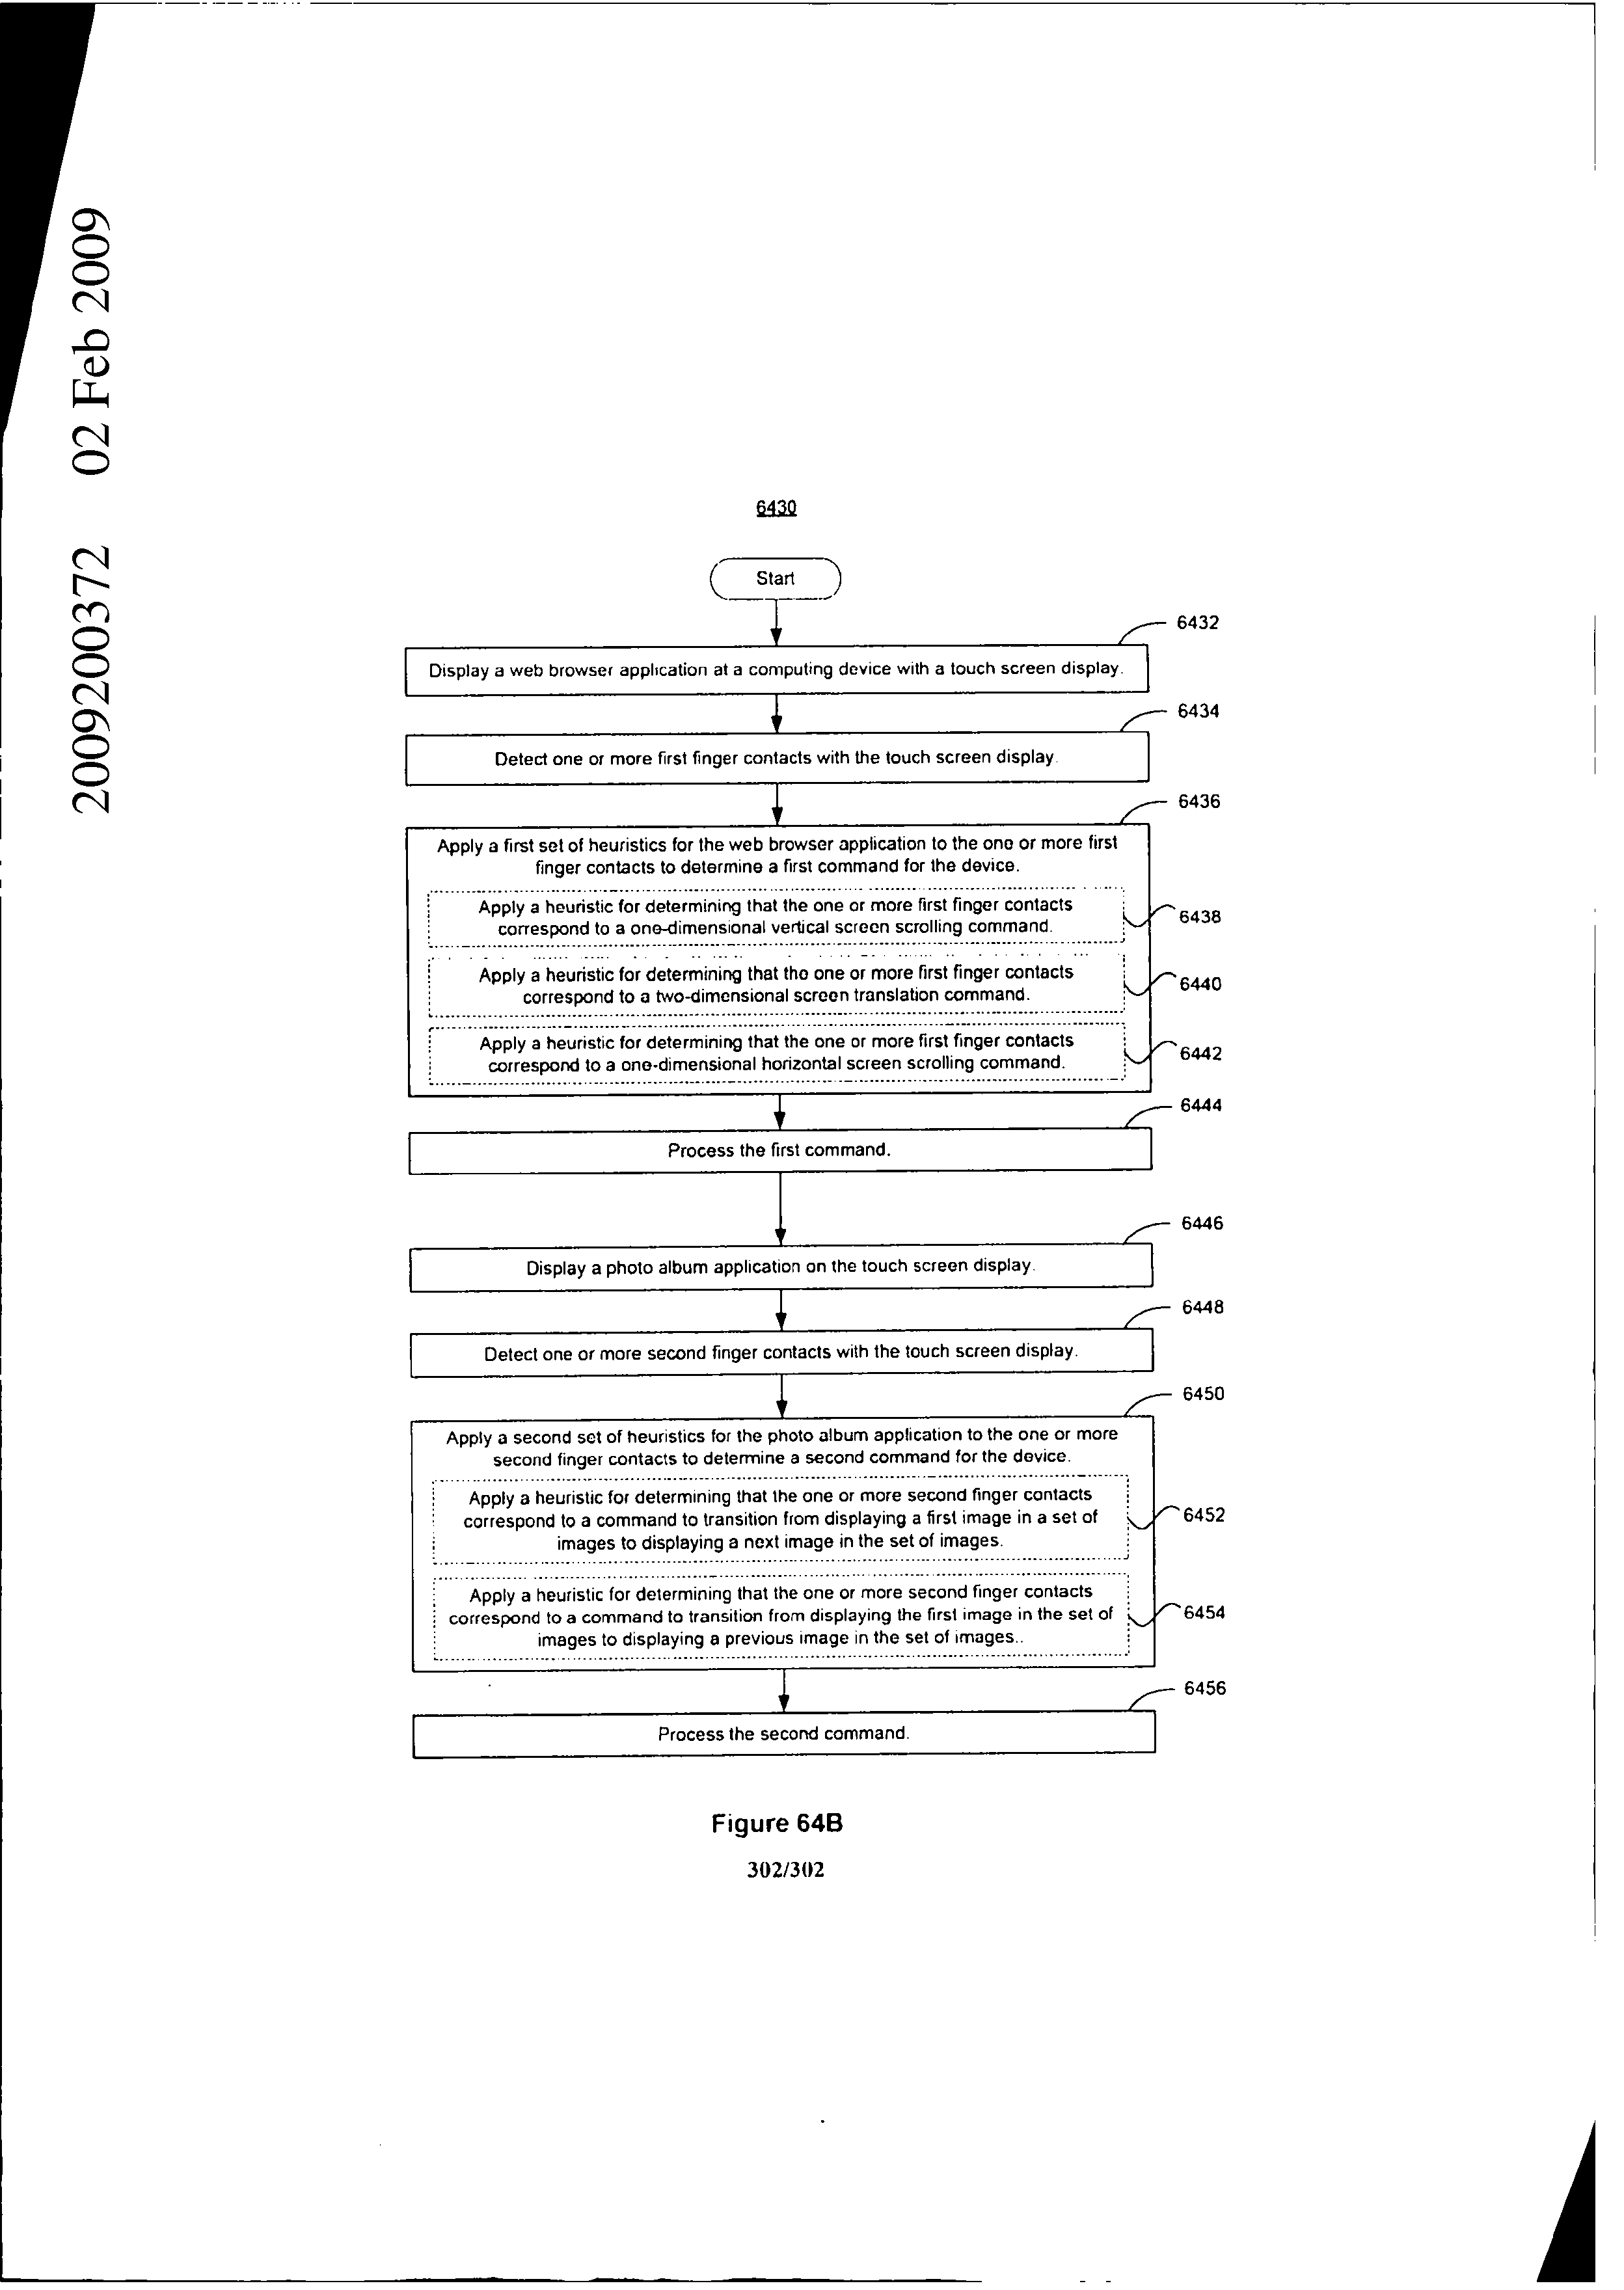 AU 2009/200372 B2 - Touch Screen Device, Method, And